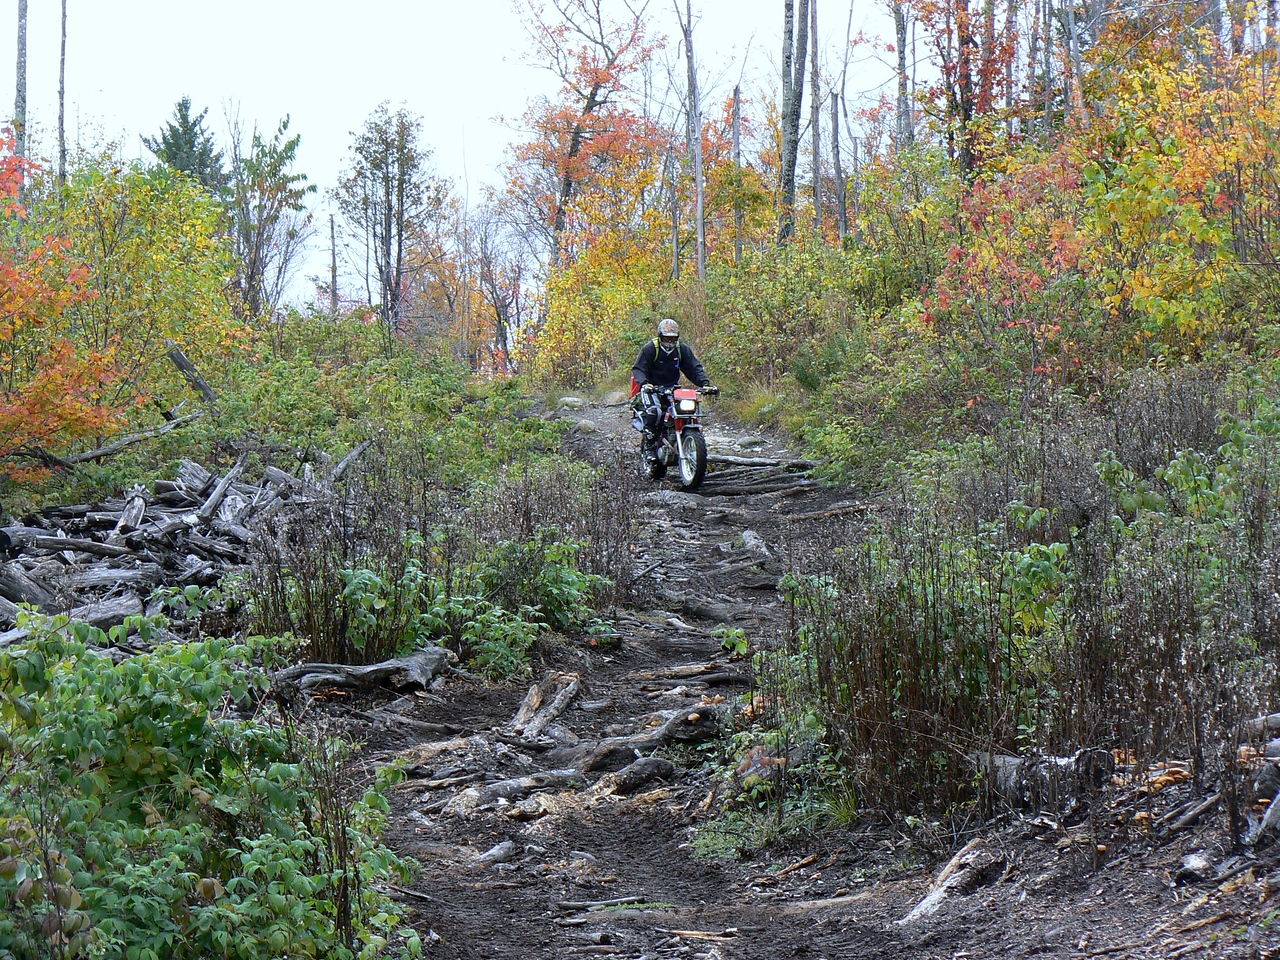 Me descending the Dimmick Mnt trail